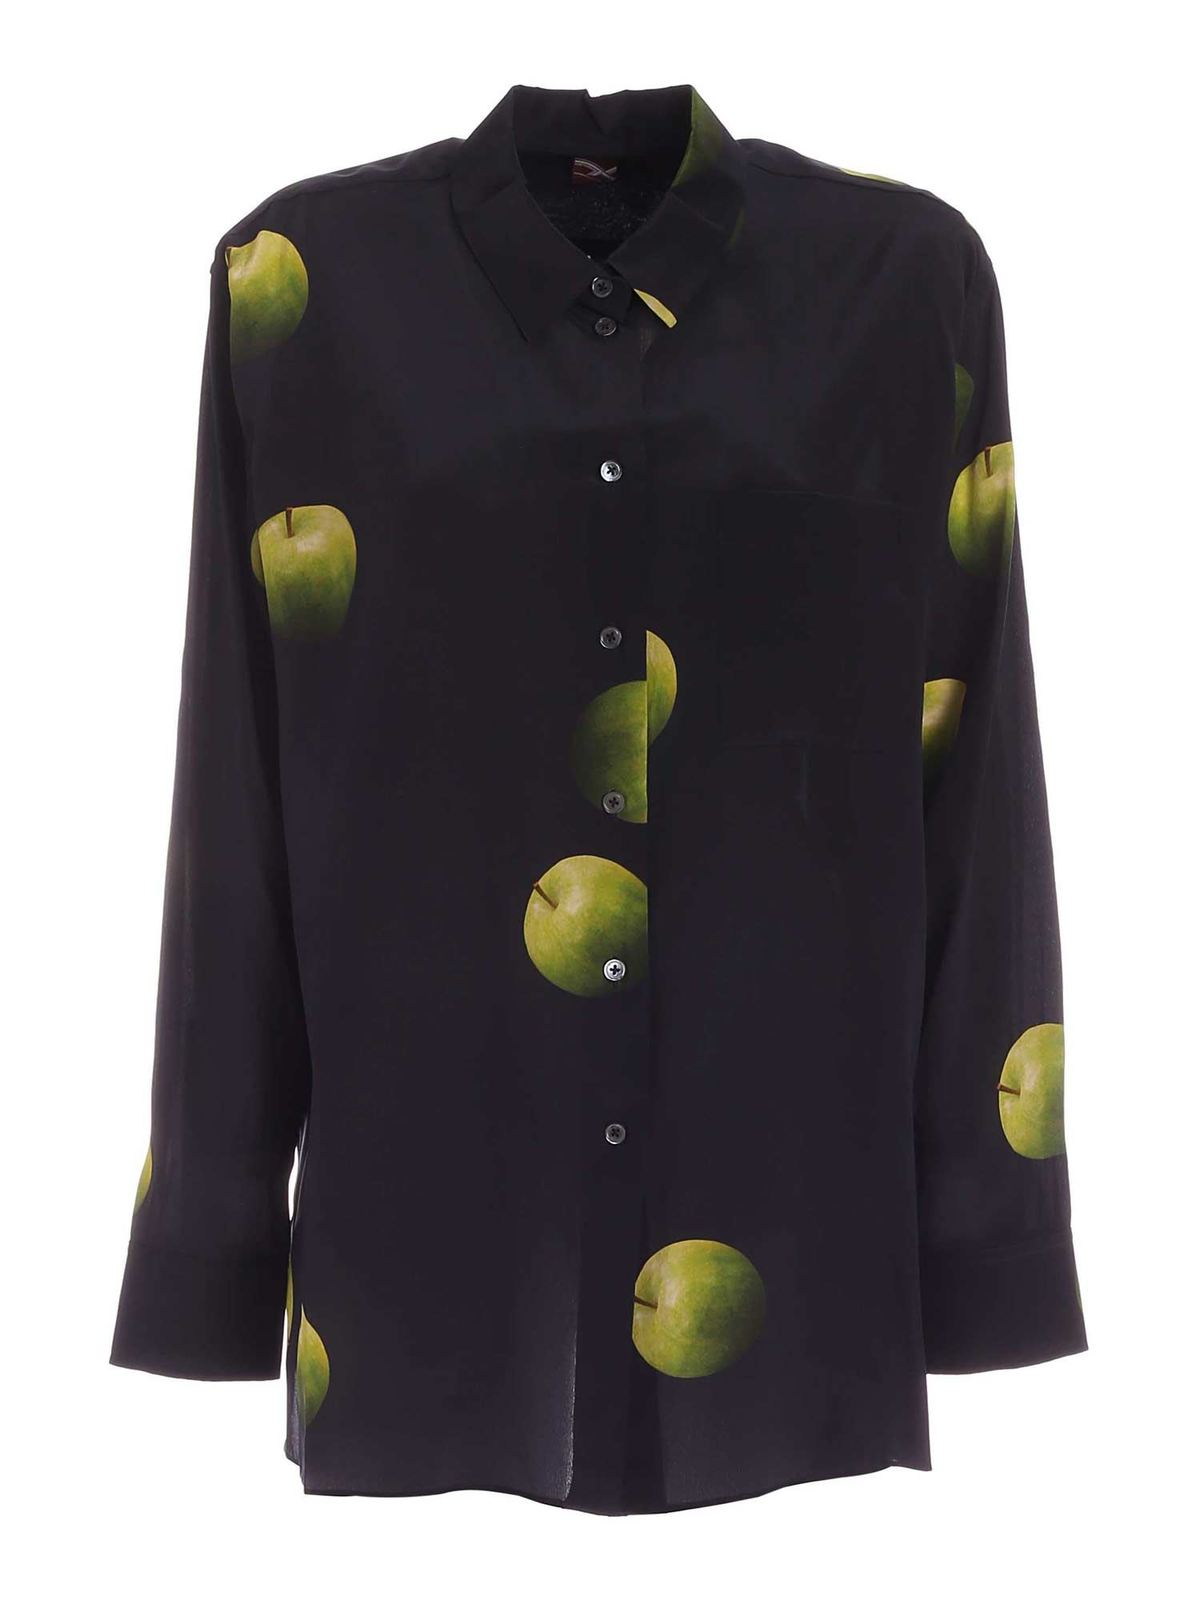 Paul Smith APPLE PRINT SHIRT IN BLACK